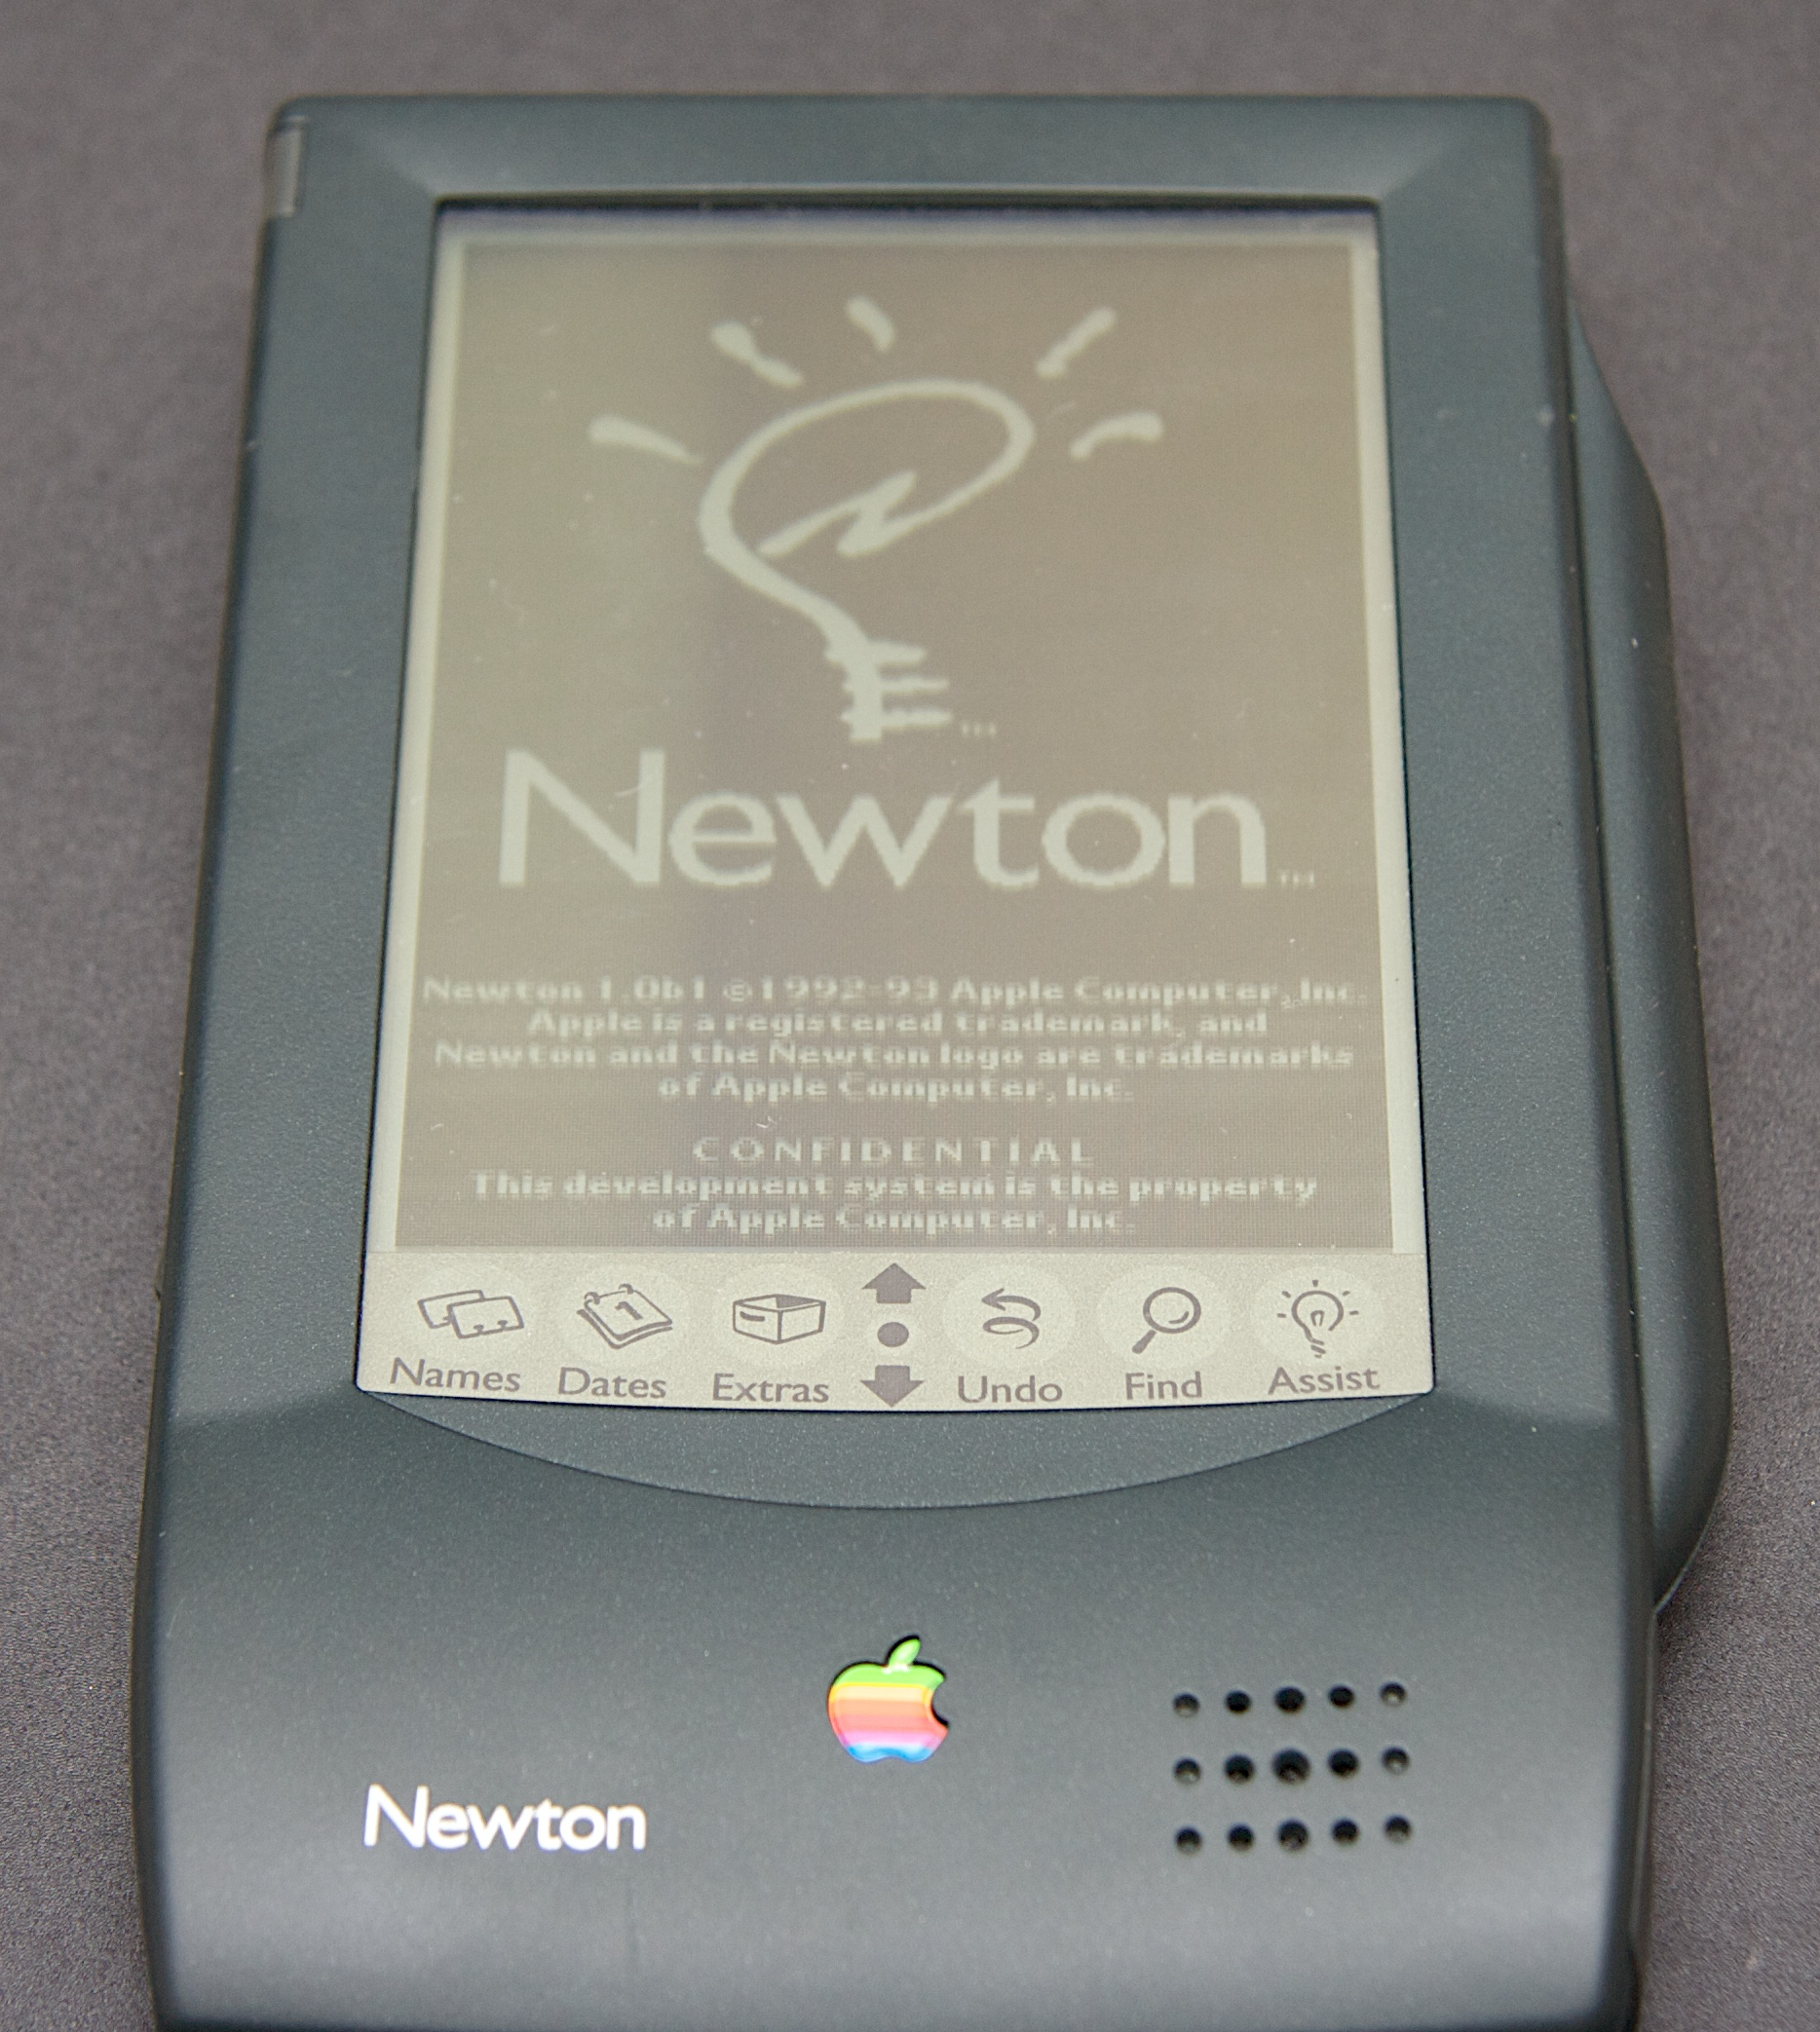 https://i0.wp.com/popularlogistics.com/wp-content/uploads/2010/08/apple-newton-power-on.jpg